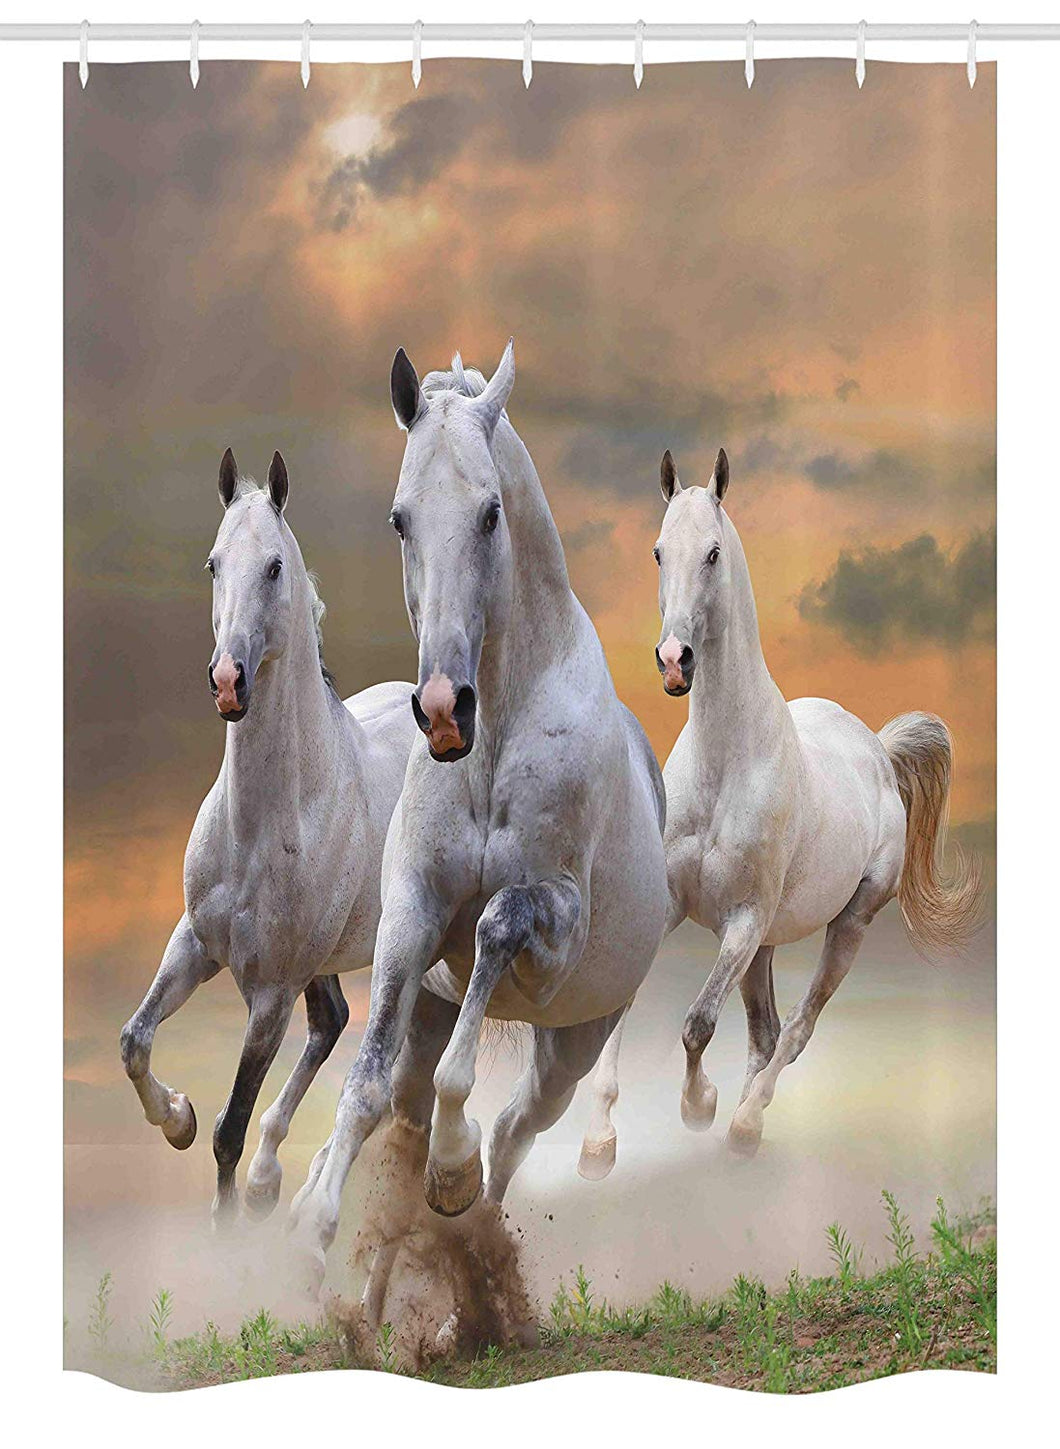 Ambesonne Horses Stall Shower Curtain, Stallion Horses Running on a Mystic Sky Background Equestrian Male Champions Print, Fabric Bathroom Decor Set with Hooks, 54 W x 78 L Inches, White Orange